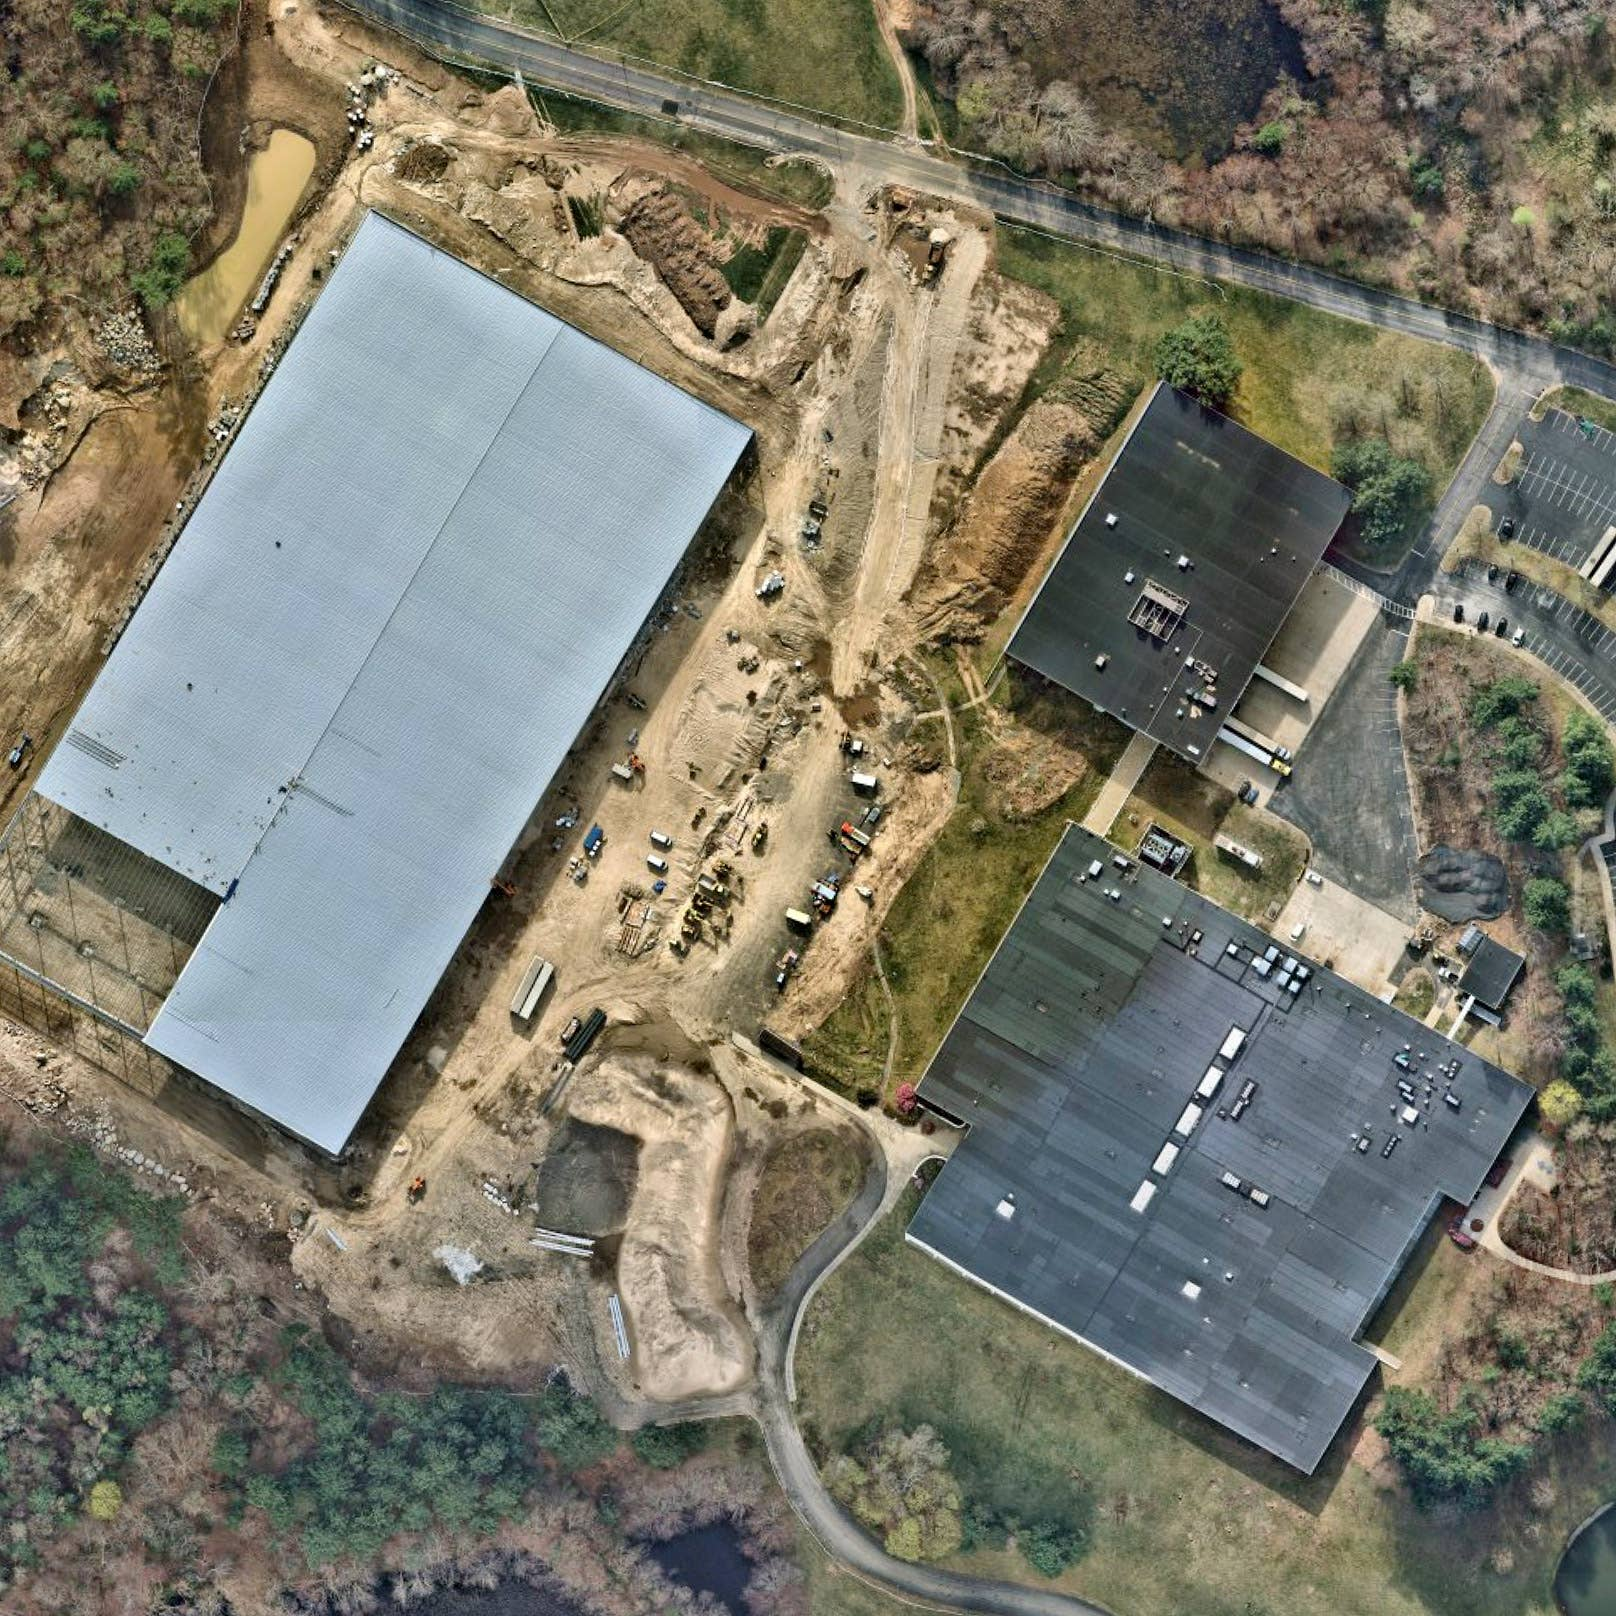 Overhead aerial view map of Financial Park land development project - Franklin, MA - 11 April 2019